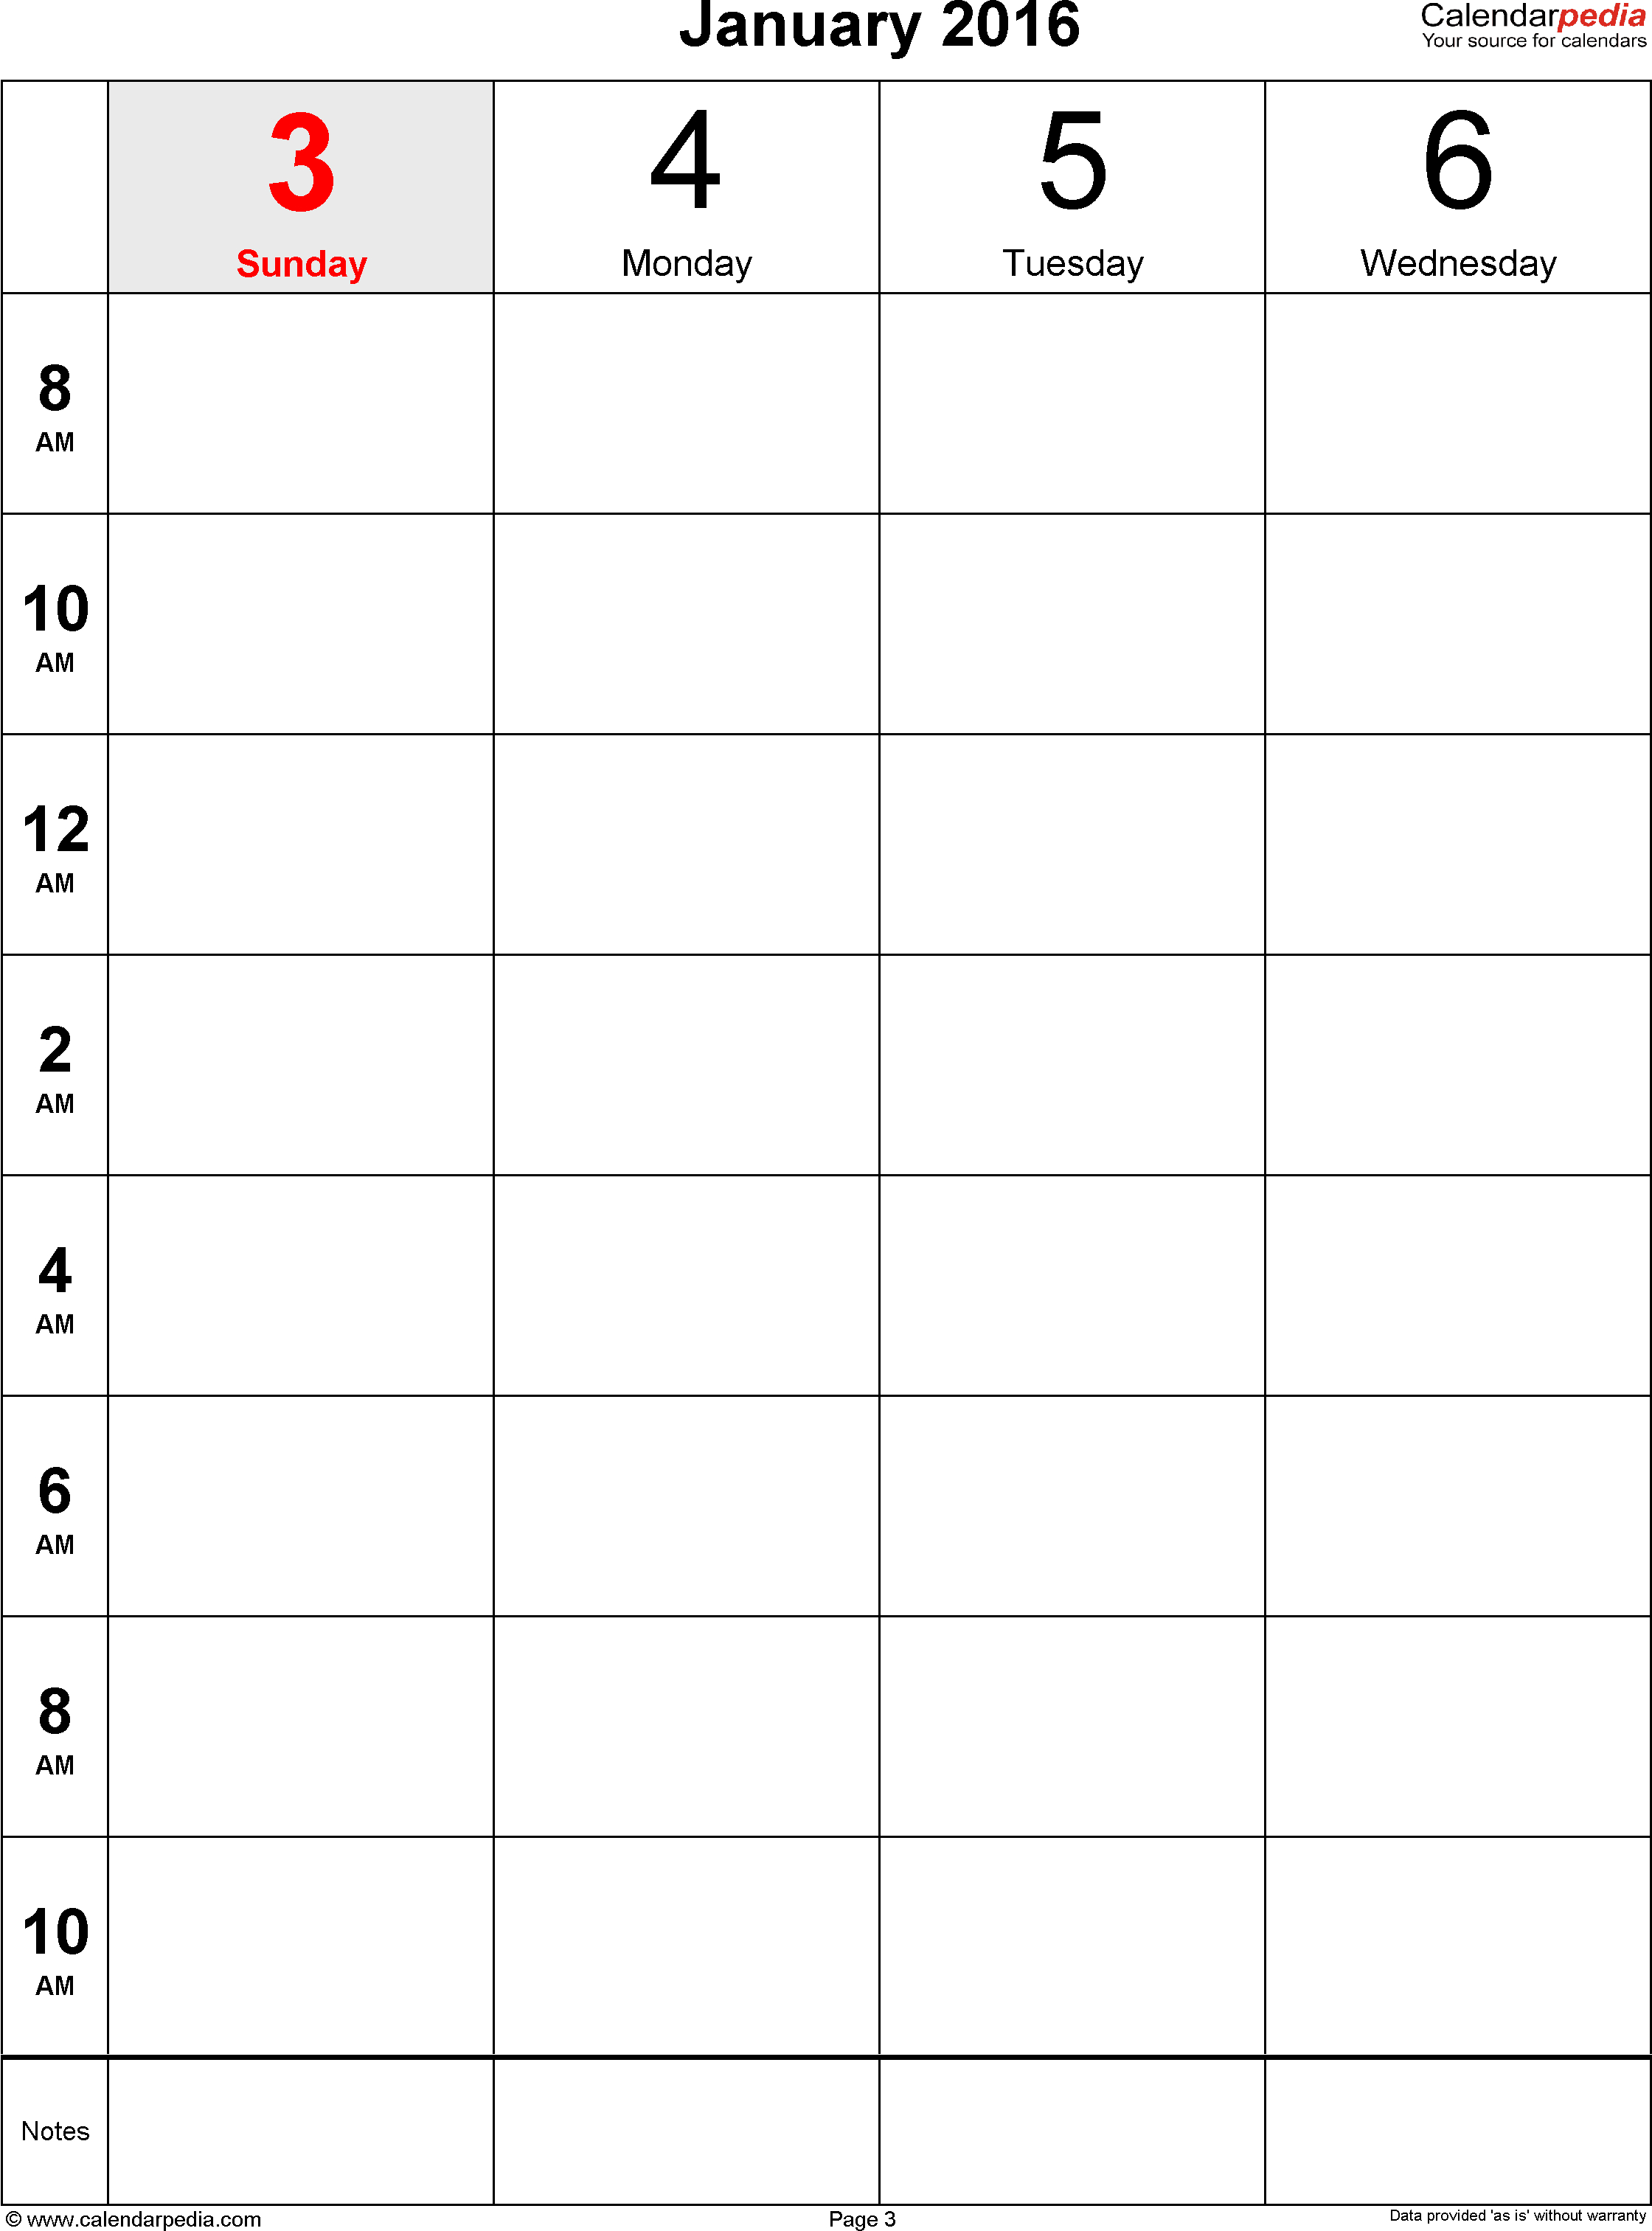 Weekly Calendar 2016 For Excel - 12 Free Printable Templates